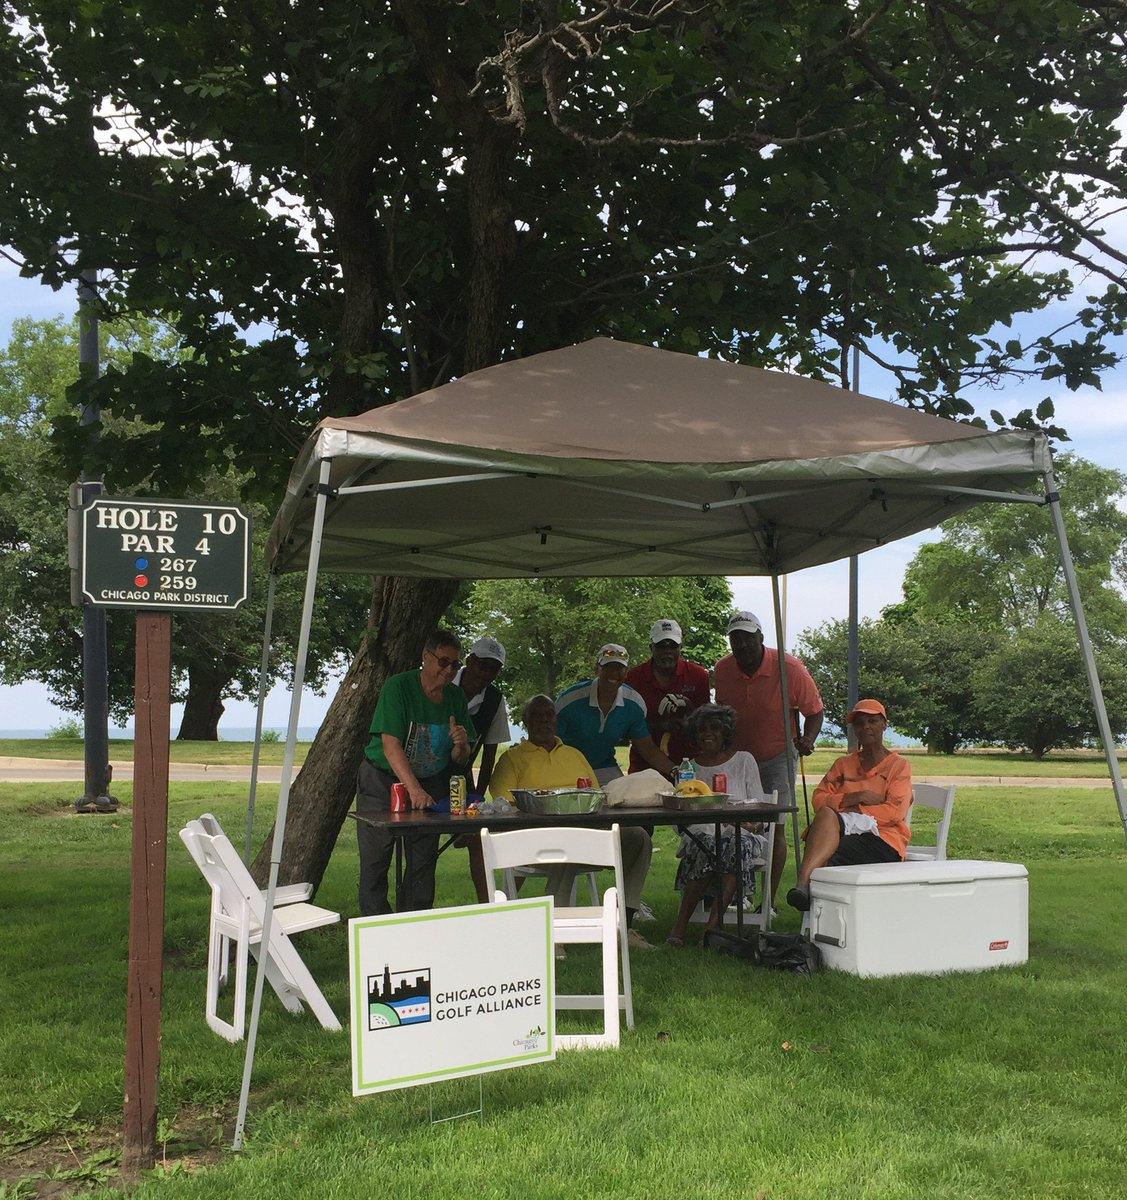 2018 Play for the Parks Golf Invitational. Thanks @ChiParksfdn for a fun day showcasing @ChicagoParks Jackson Park Golf Course!